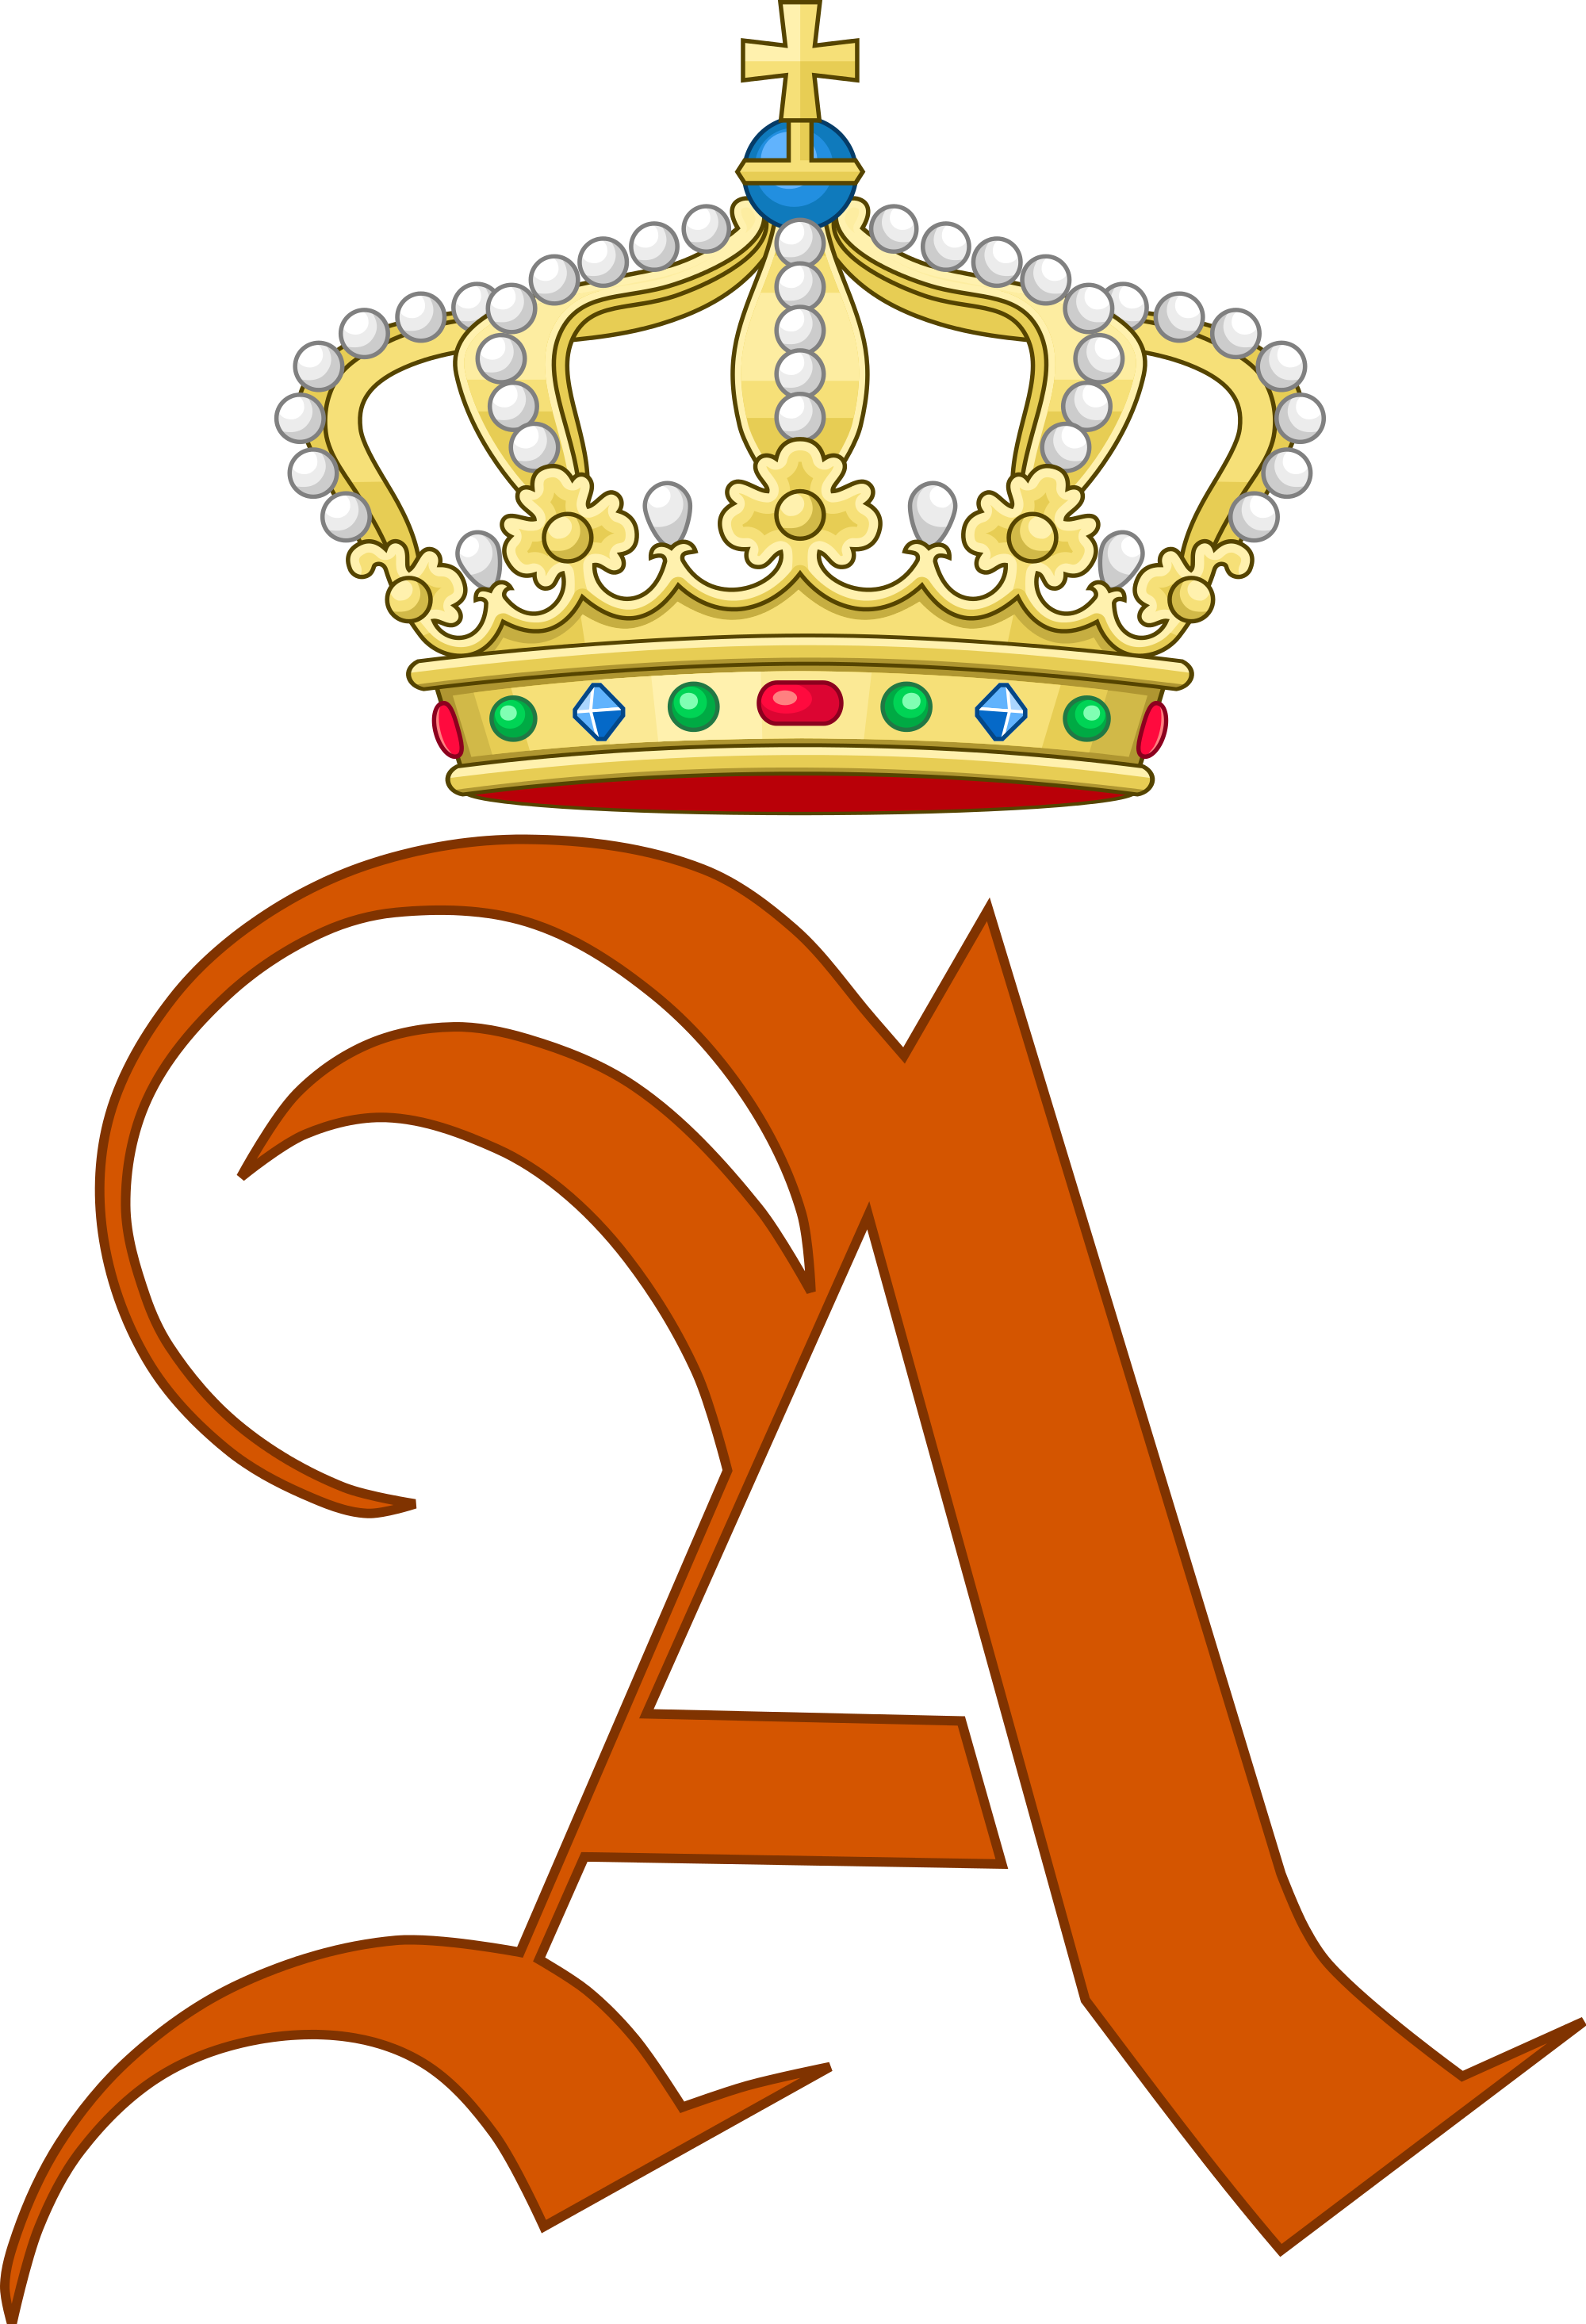 Duchess crown clipart graphic library Queen Anna Pavlovna of the Netherlands | Royal Monograms | Pinterest ... graphic library